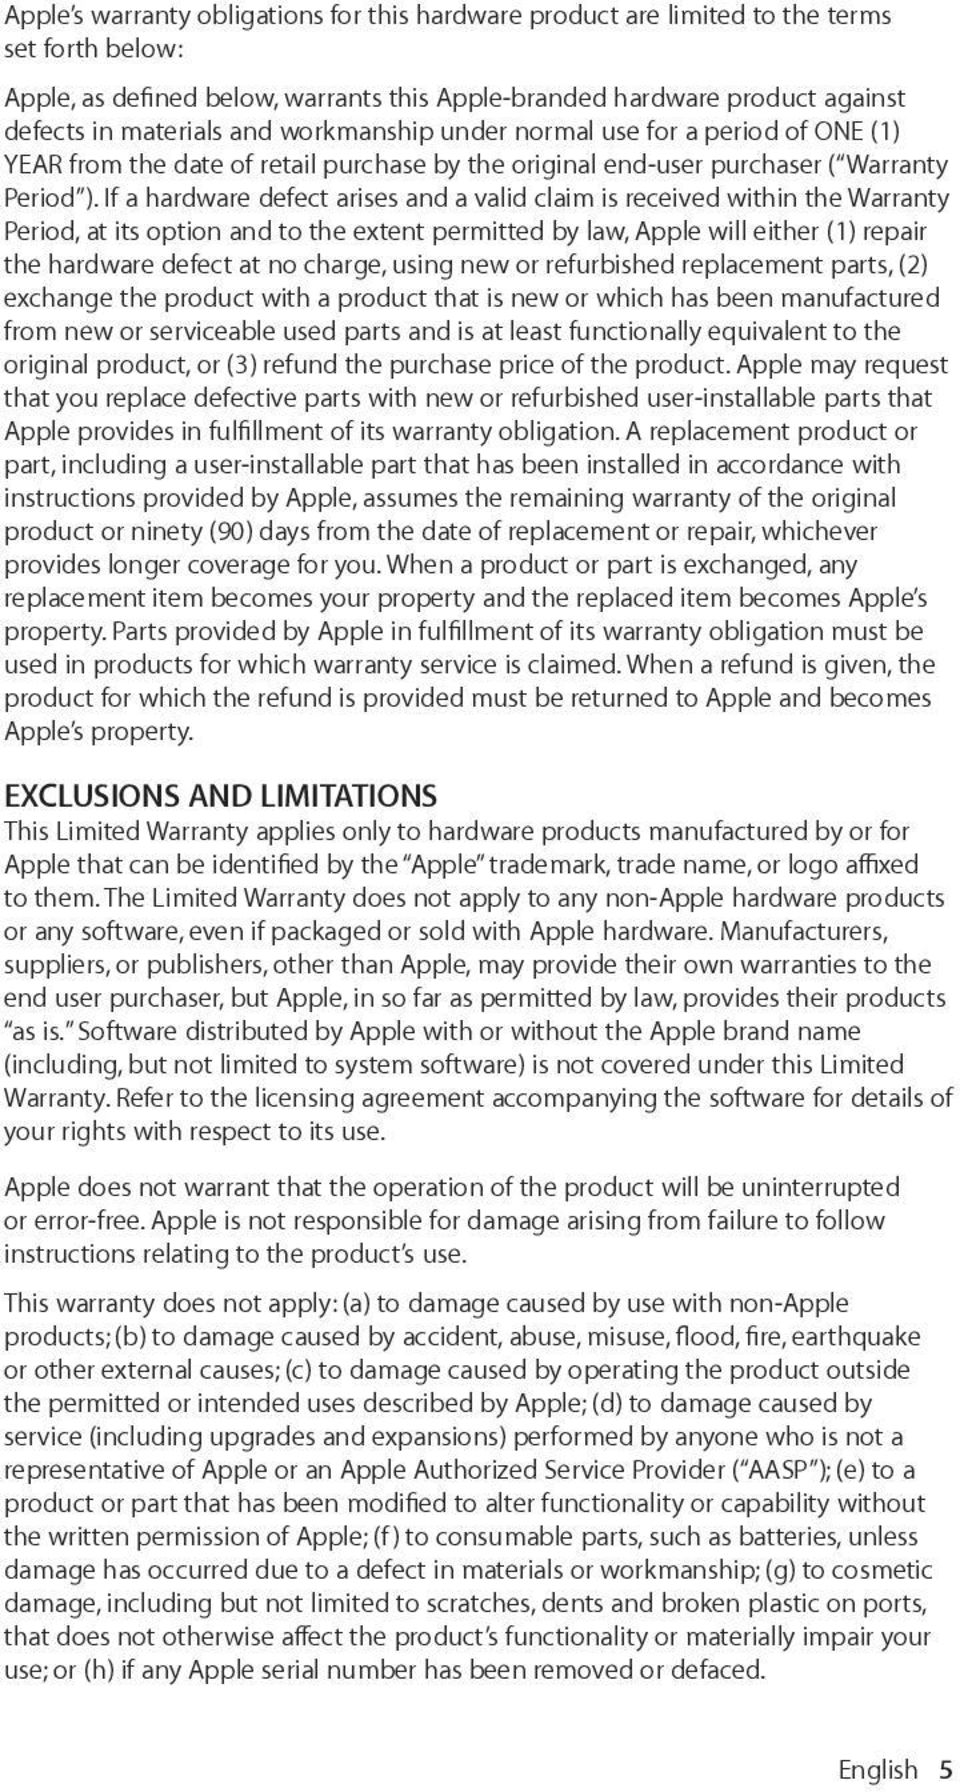 If a hardware defect arises and a valid claim is received within the Warranty Period, at its option and to the extent permitted by law, Apple will either (1) repair the hardware defect at no charge,